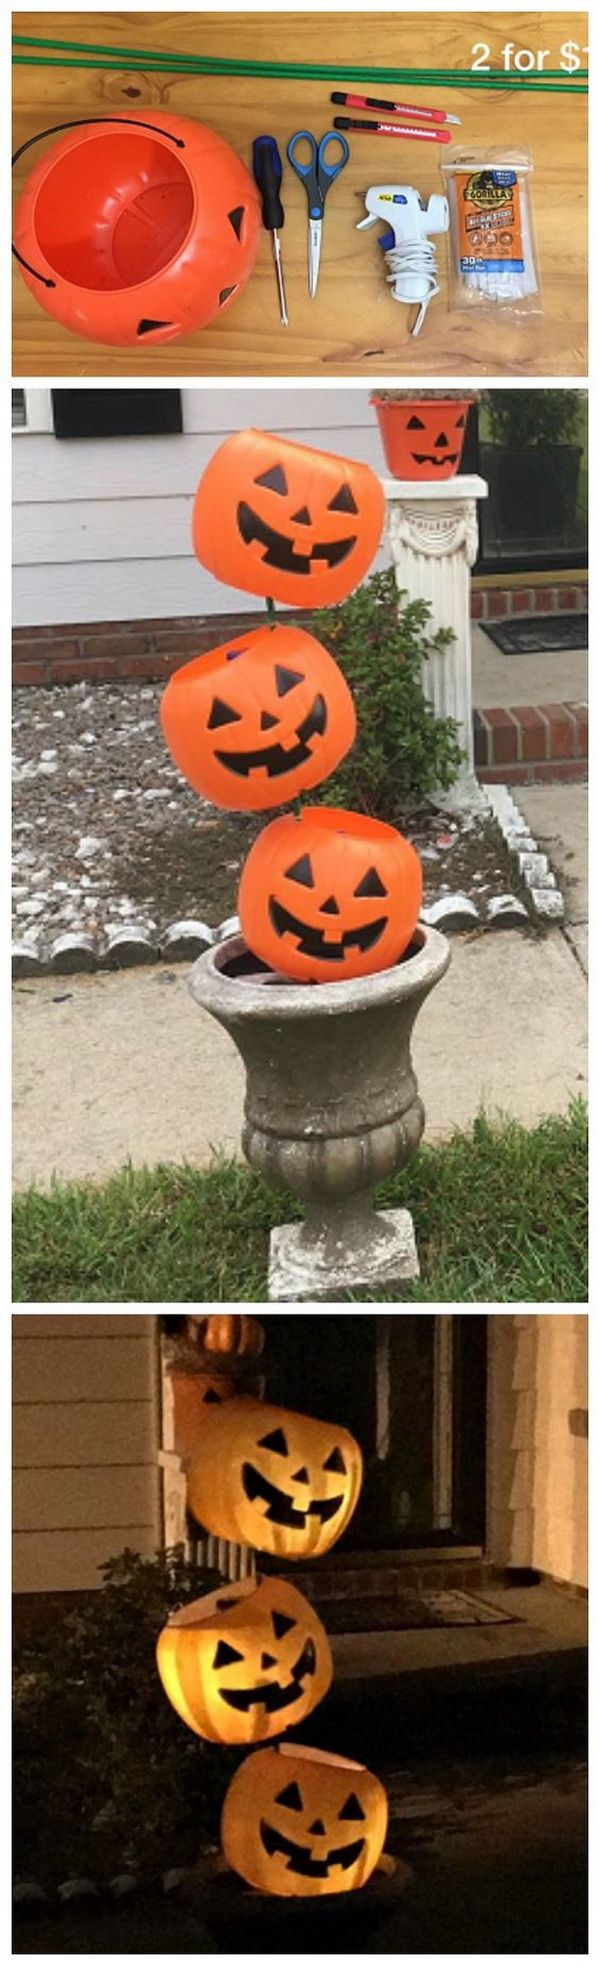 30+ Homemade Halloween Decoration Ideas Pinterest Plastic